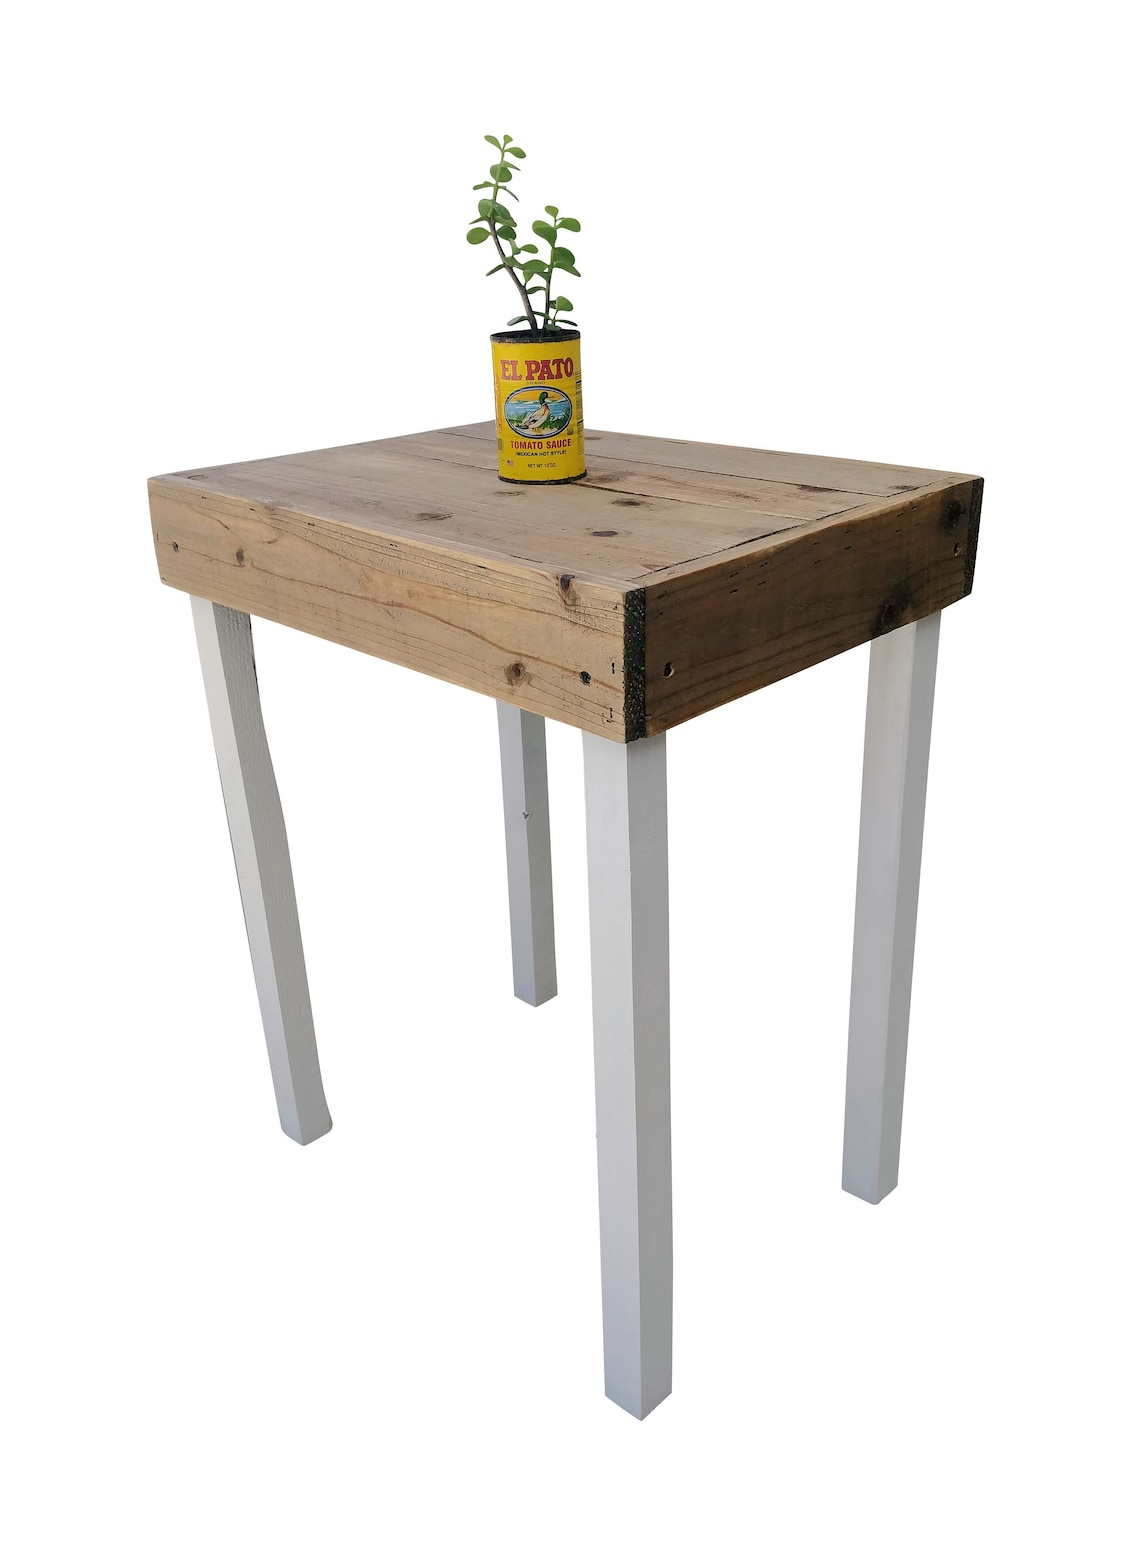 Farmhouse End Table - accent, bedroom, entryway, furniture, night stand, nightstand, pallet, shabby chic, side table, white, wood,